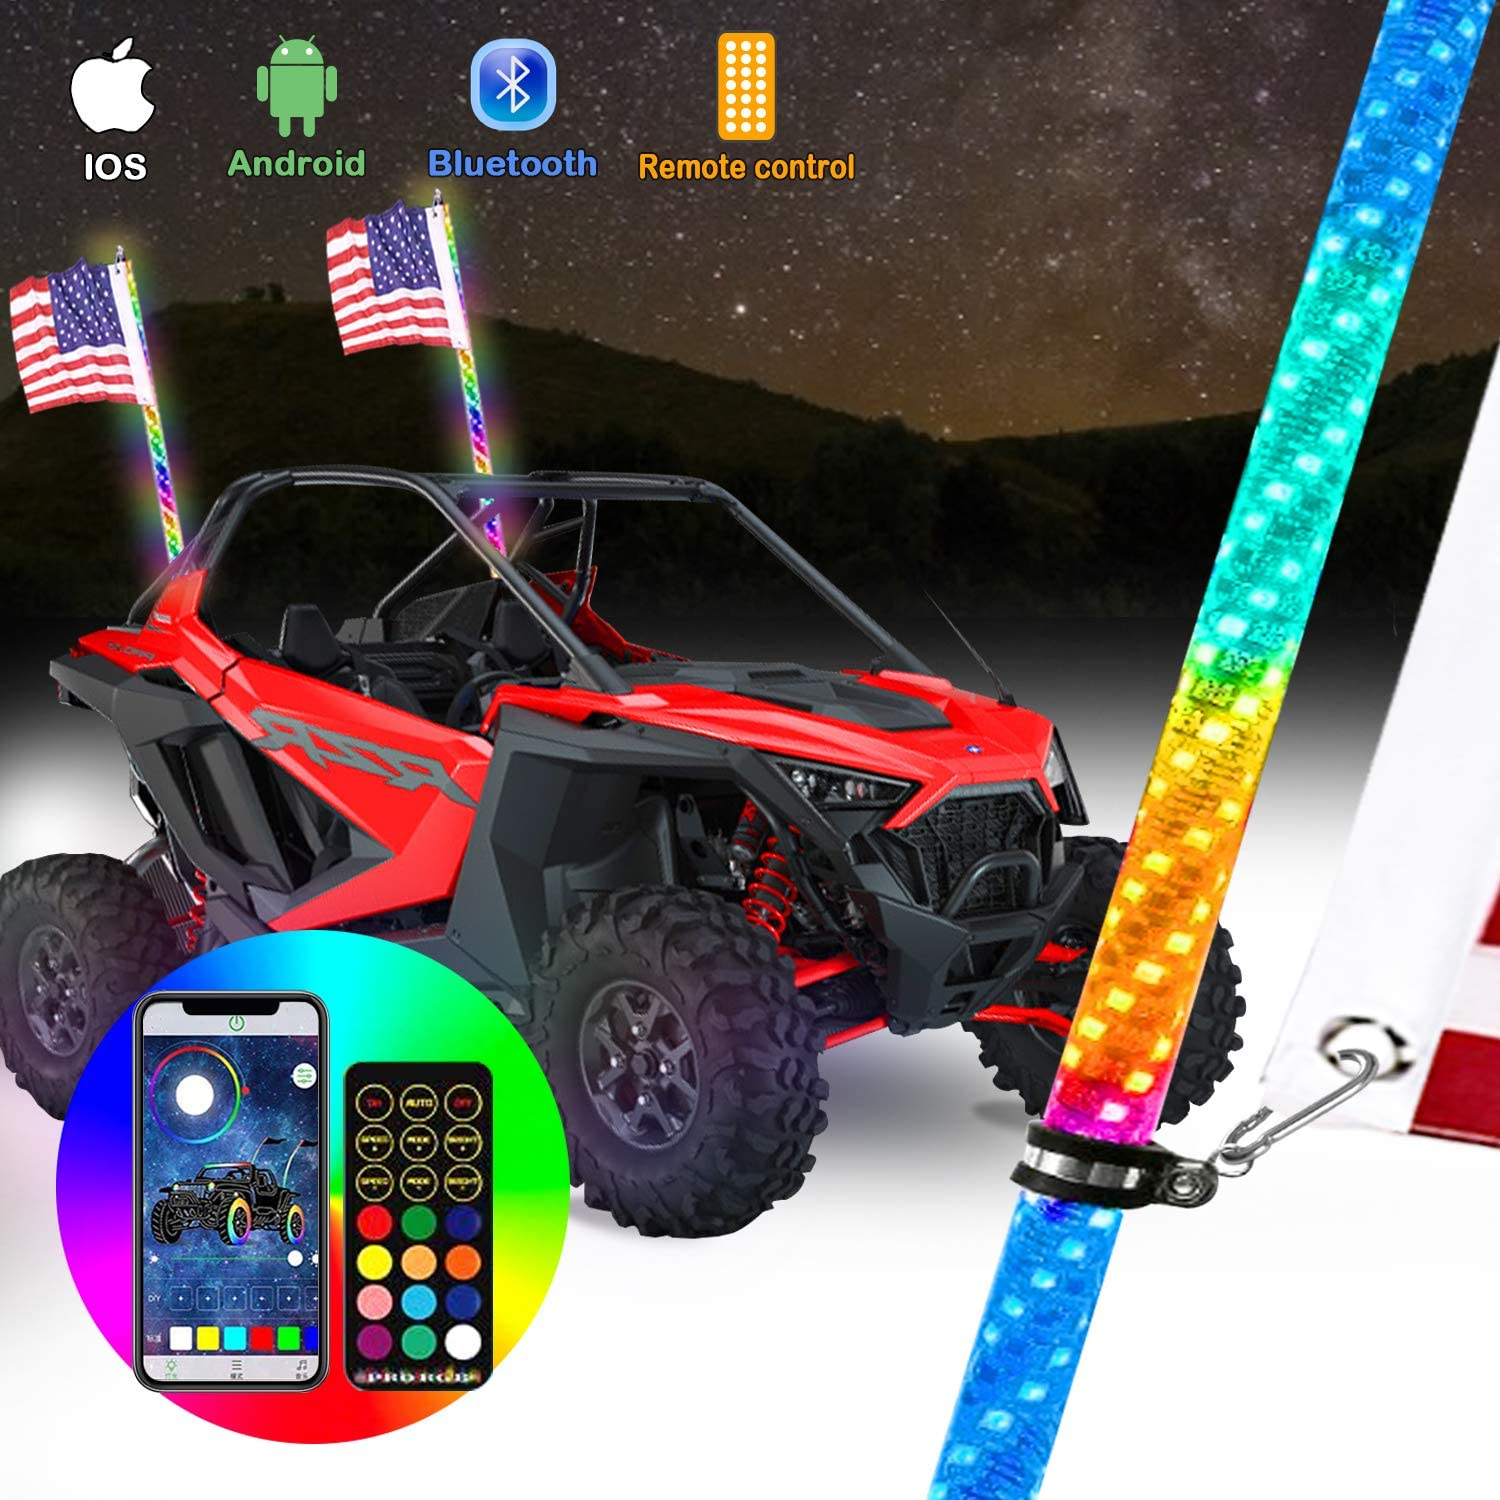 omotor 1pcs 3ft LED Whip Light with Bluetooth and Remote Control Spiral RGB Chase Light Offroad 360/°Spiraling Rising Dream Wrapped Dancing Whips